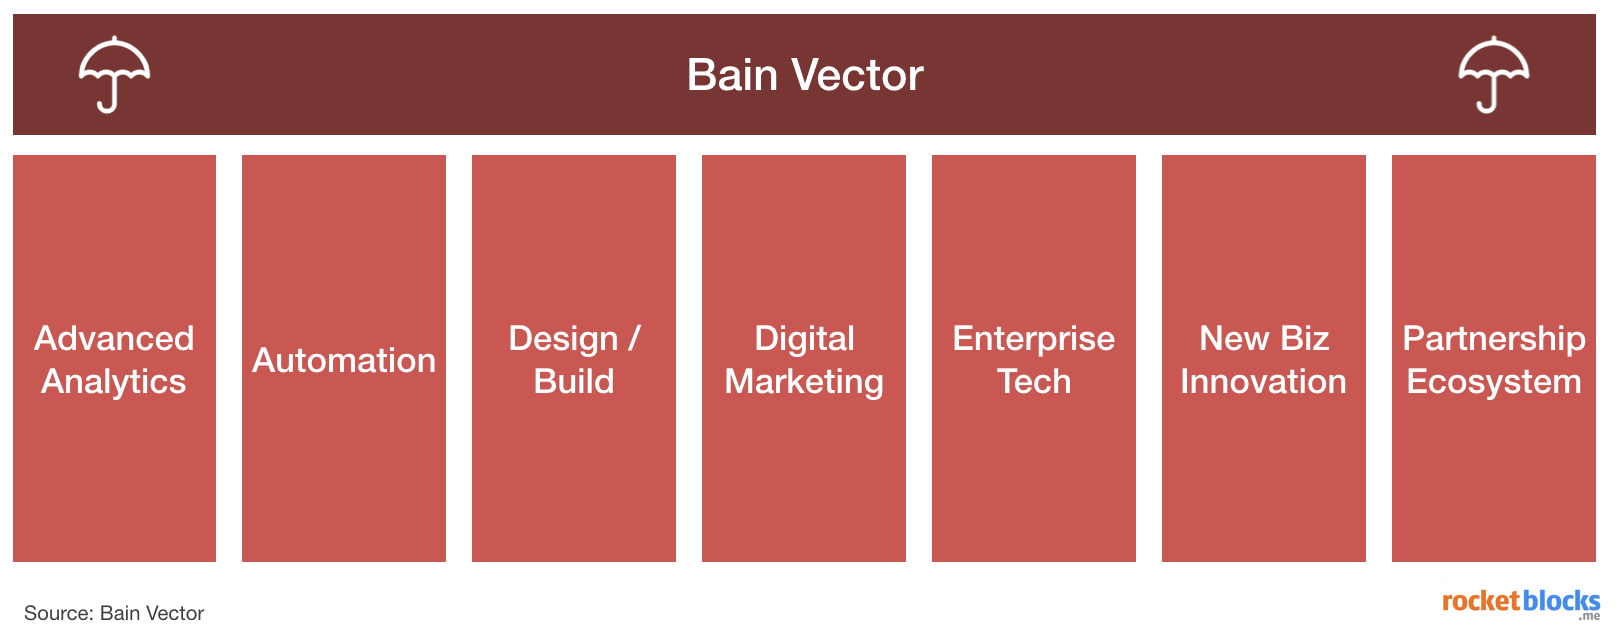 Bain Vector's seven service offerings